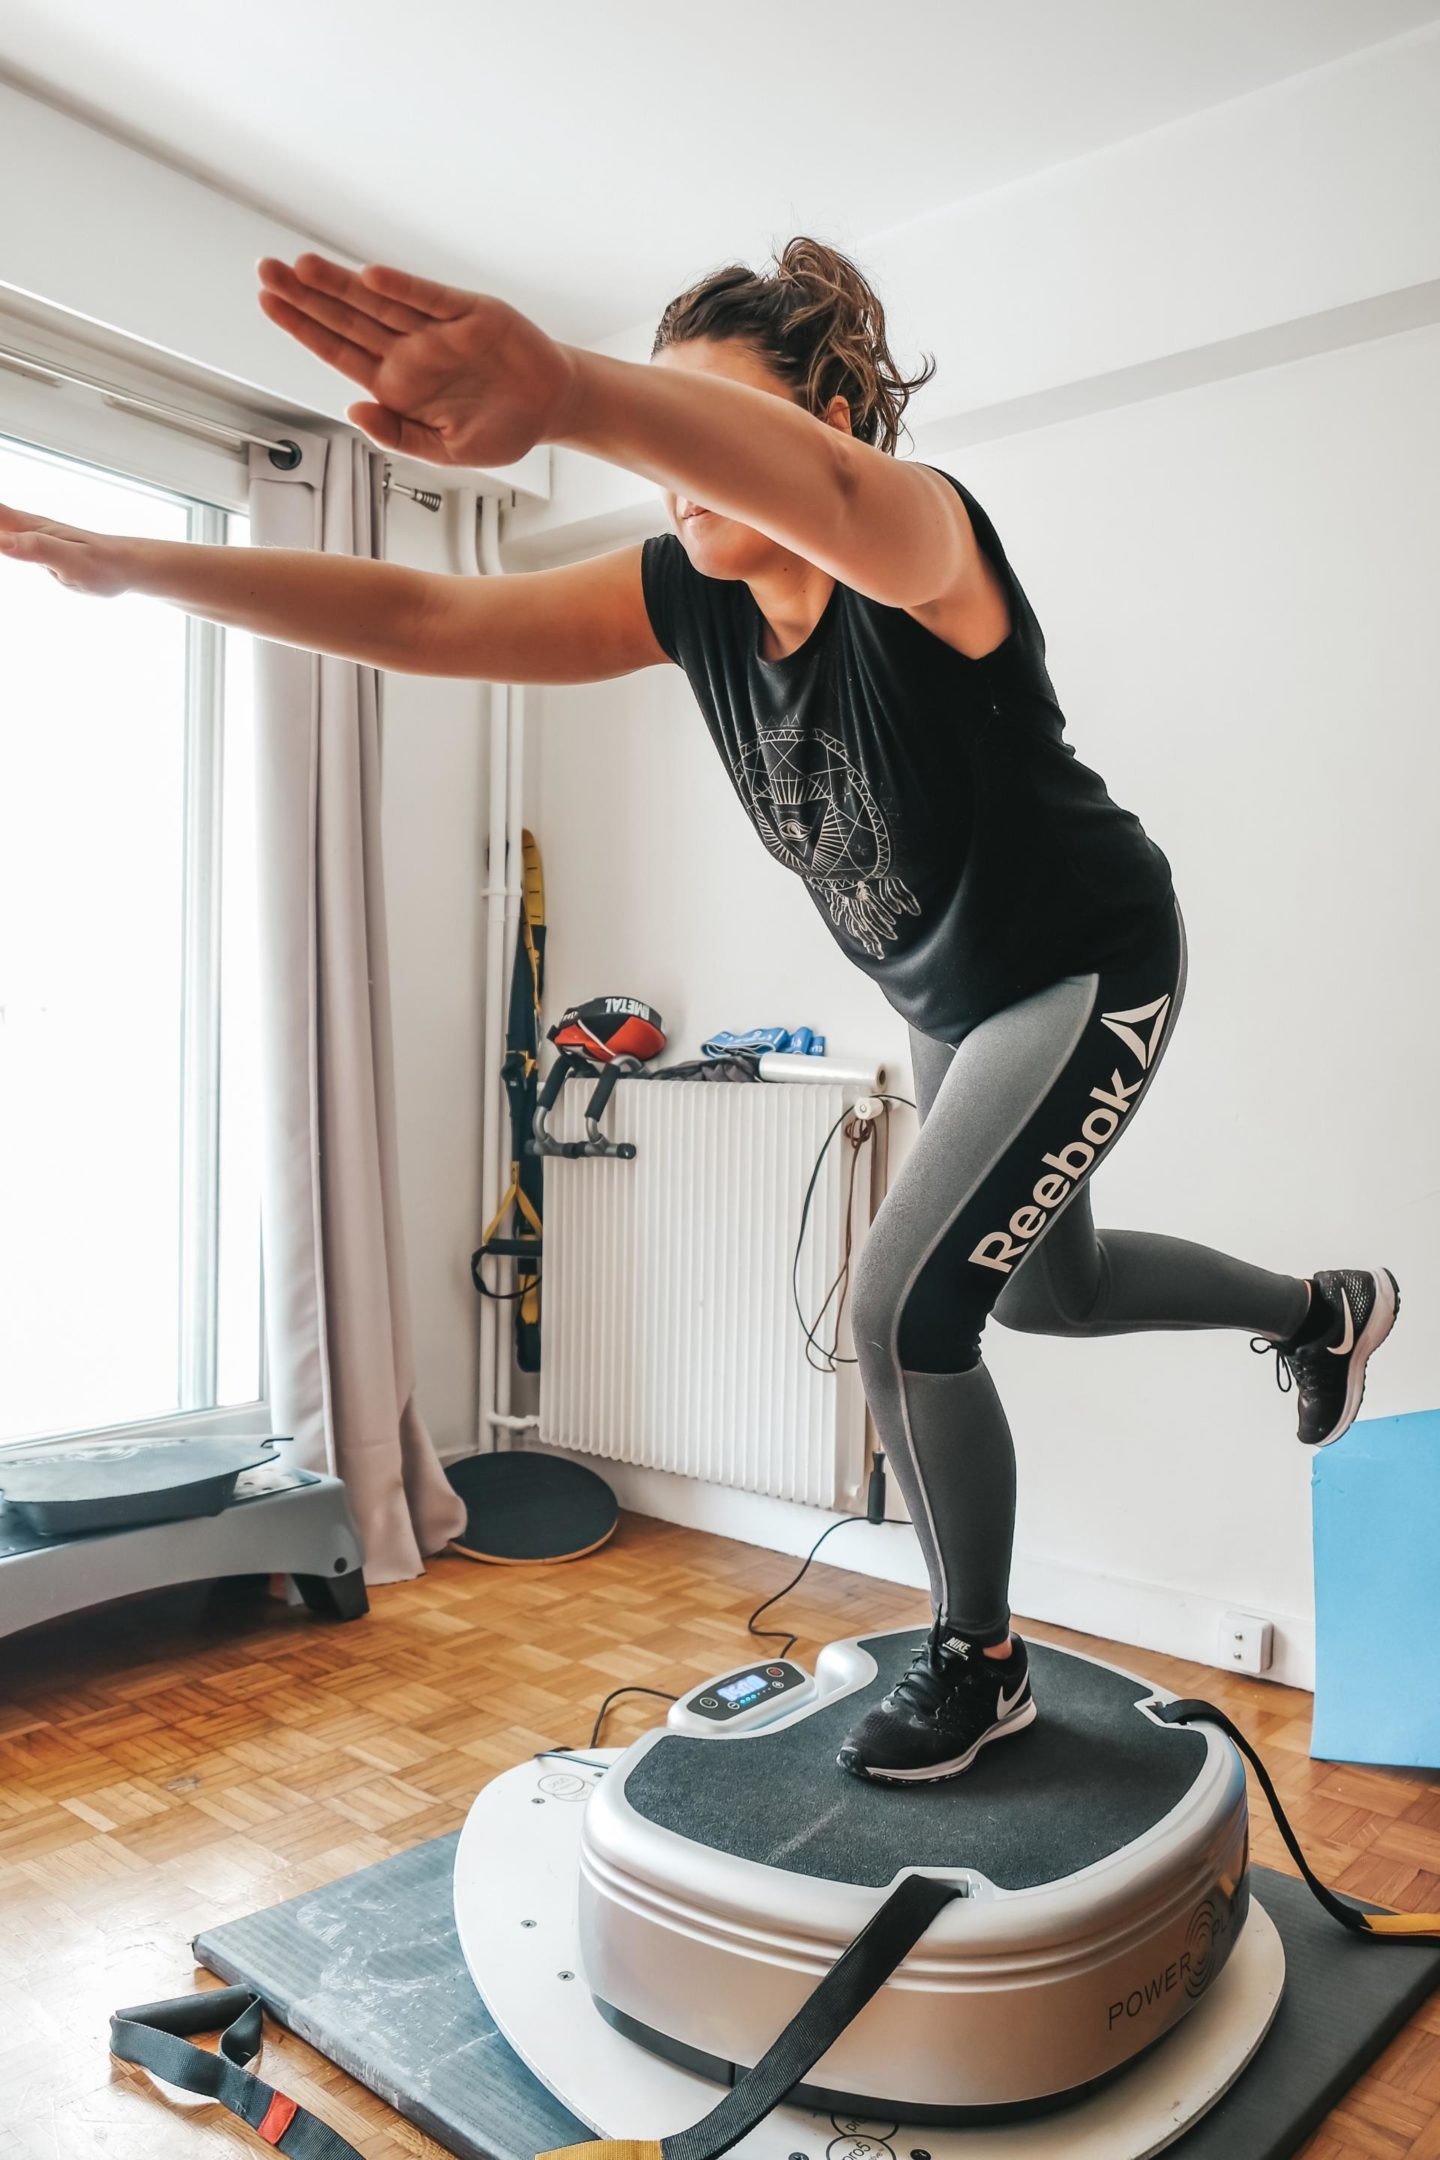 modèle powerplate move